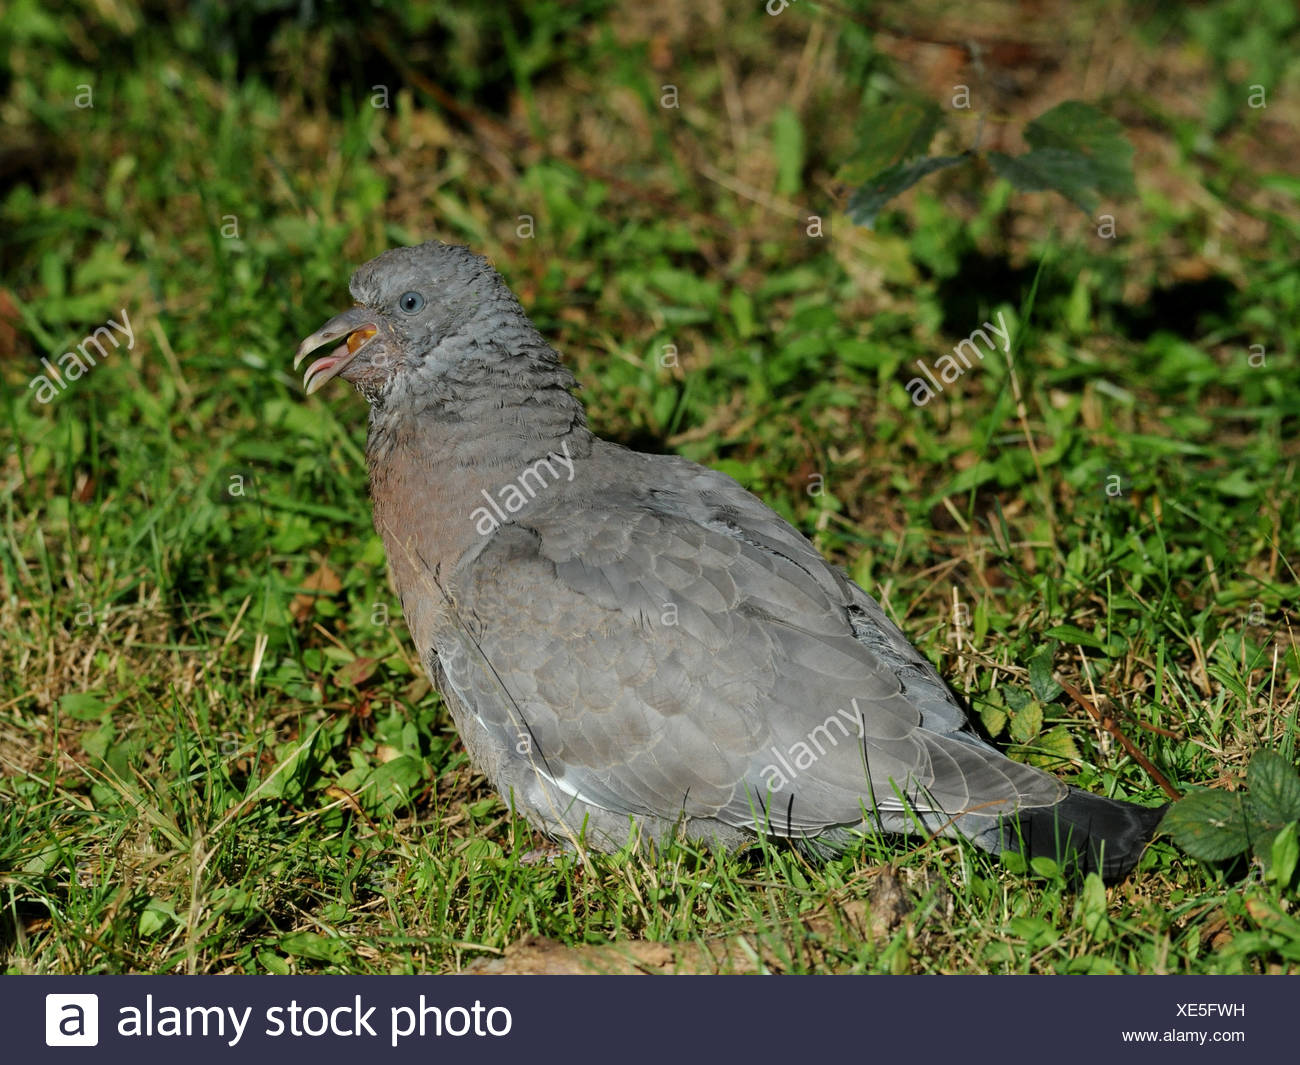 A very old pigeon resting on some grass. - Stock Image